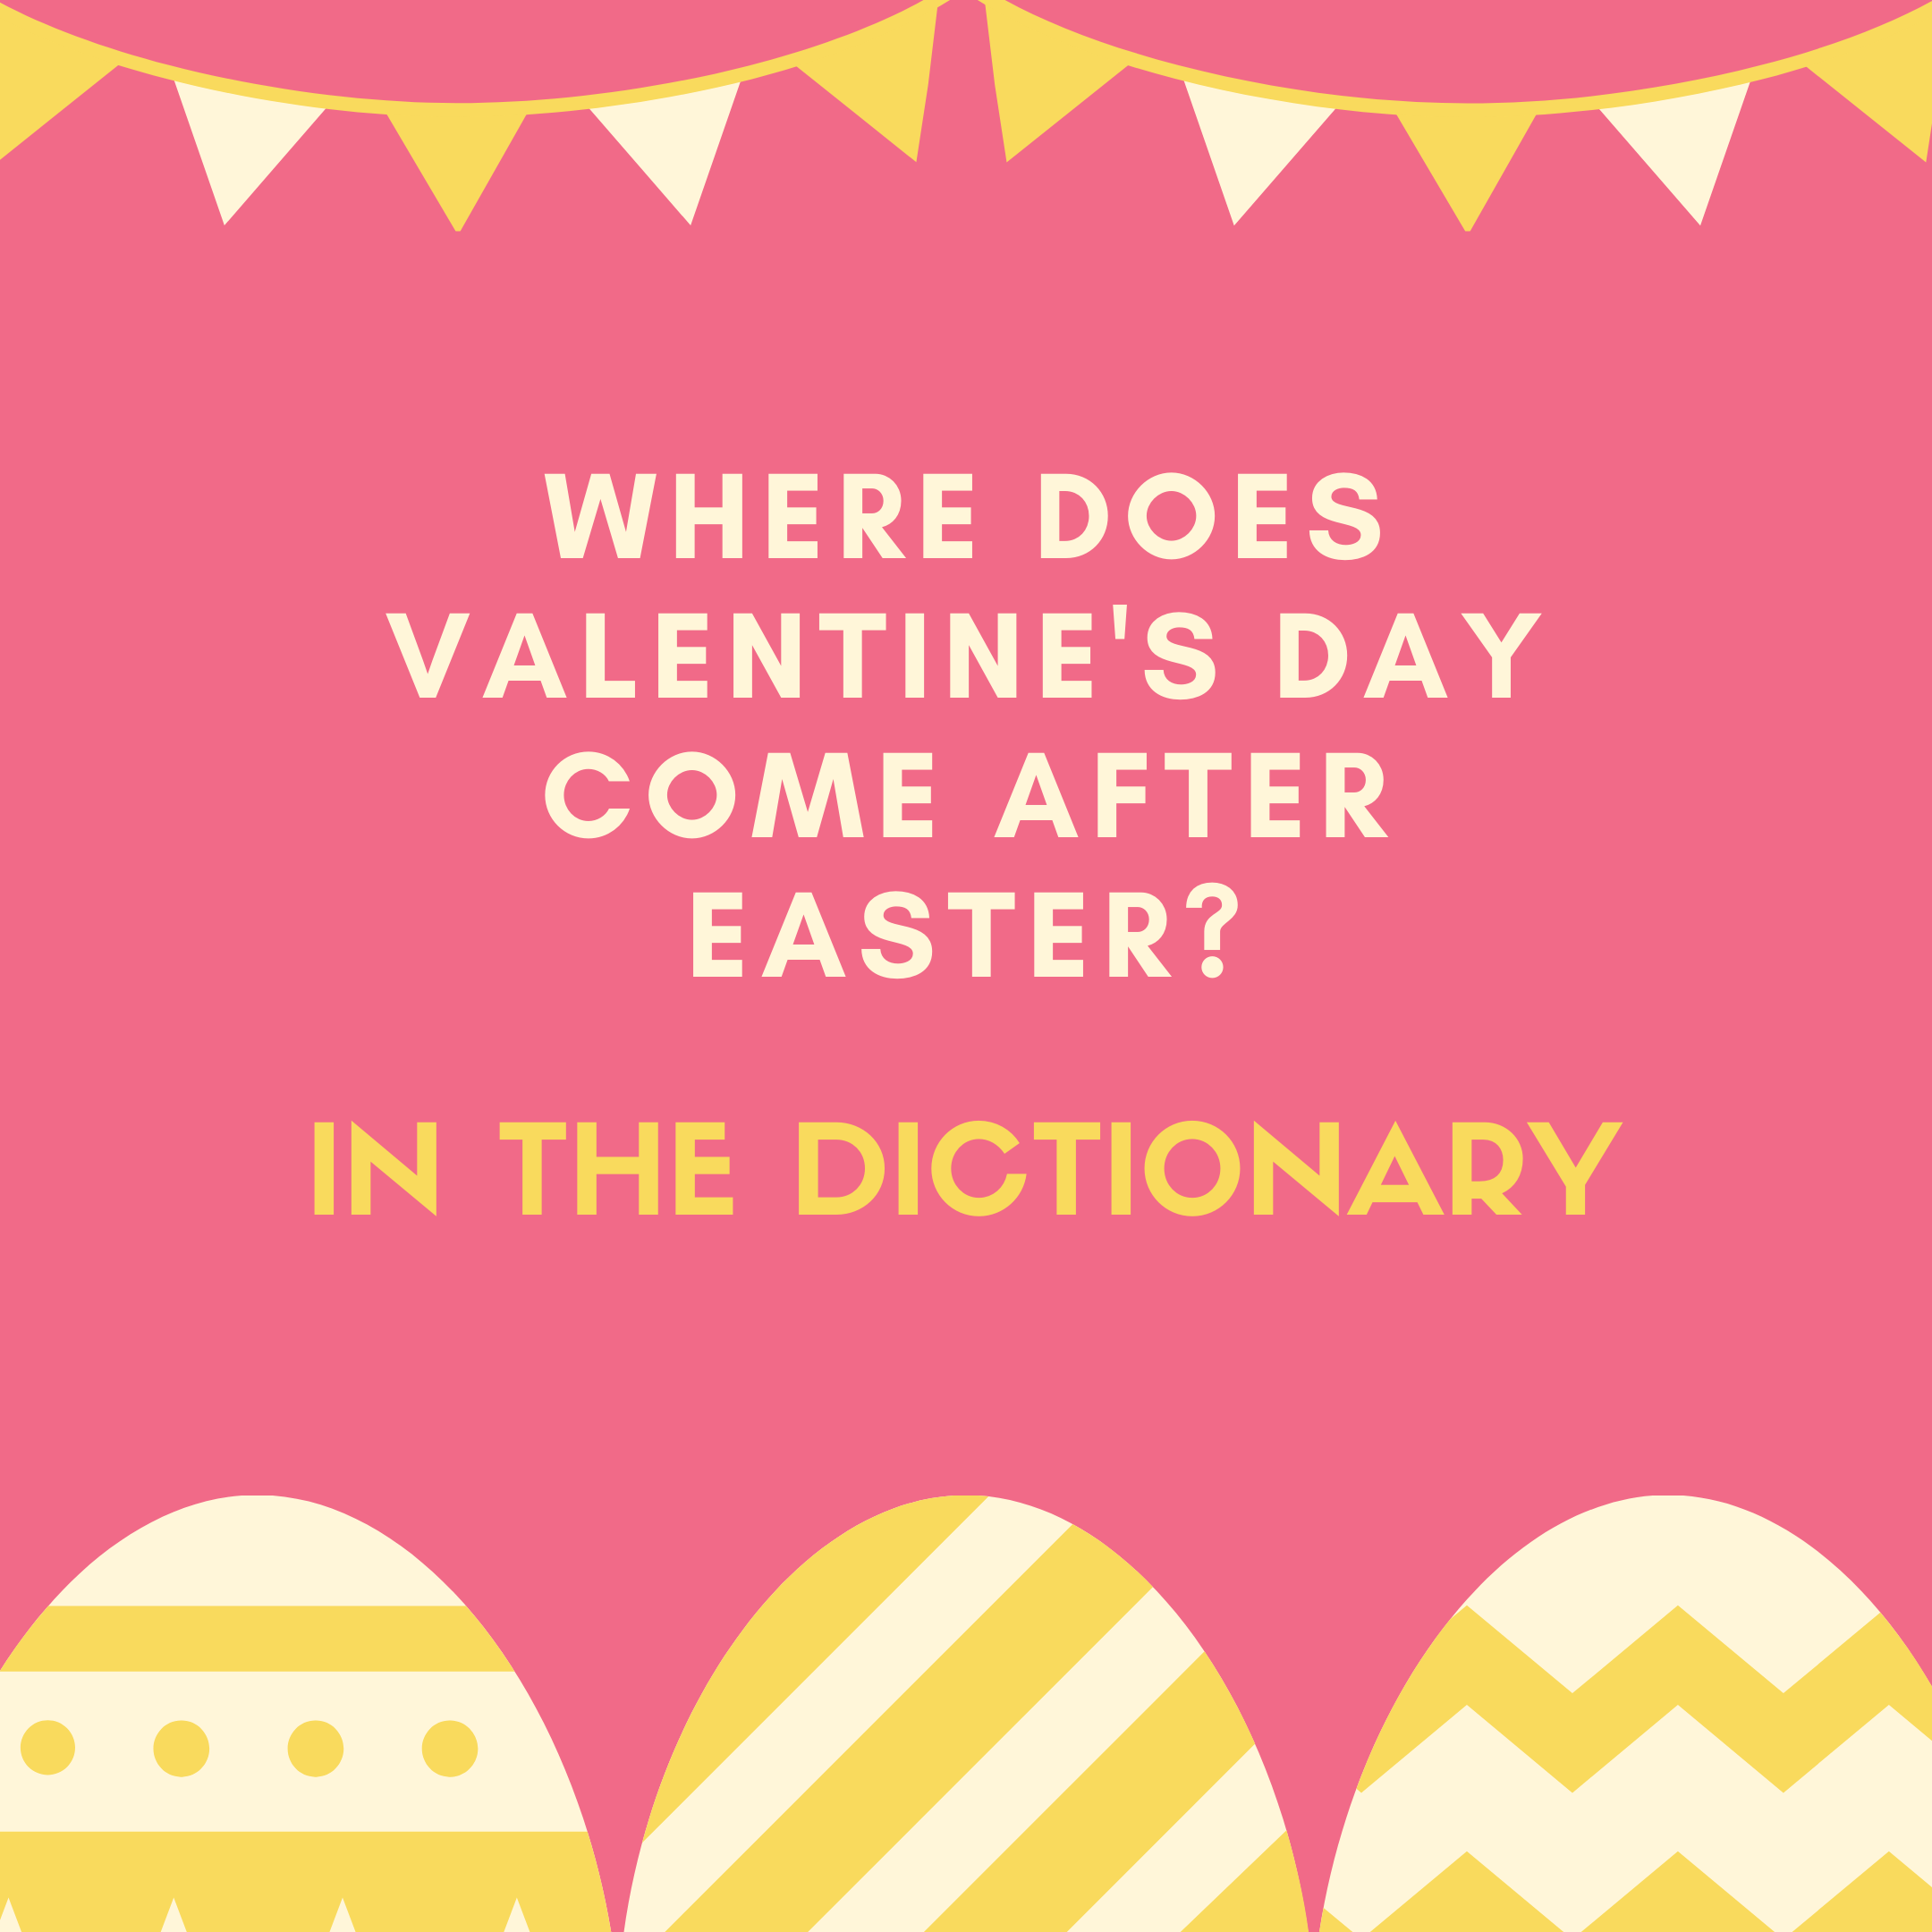 Where does Valentine's Day come after Easter? In the dictionary